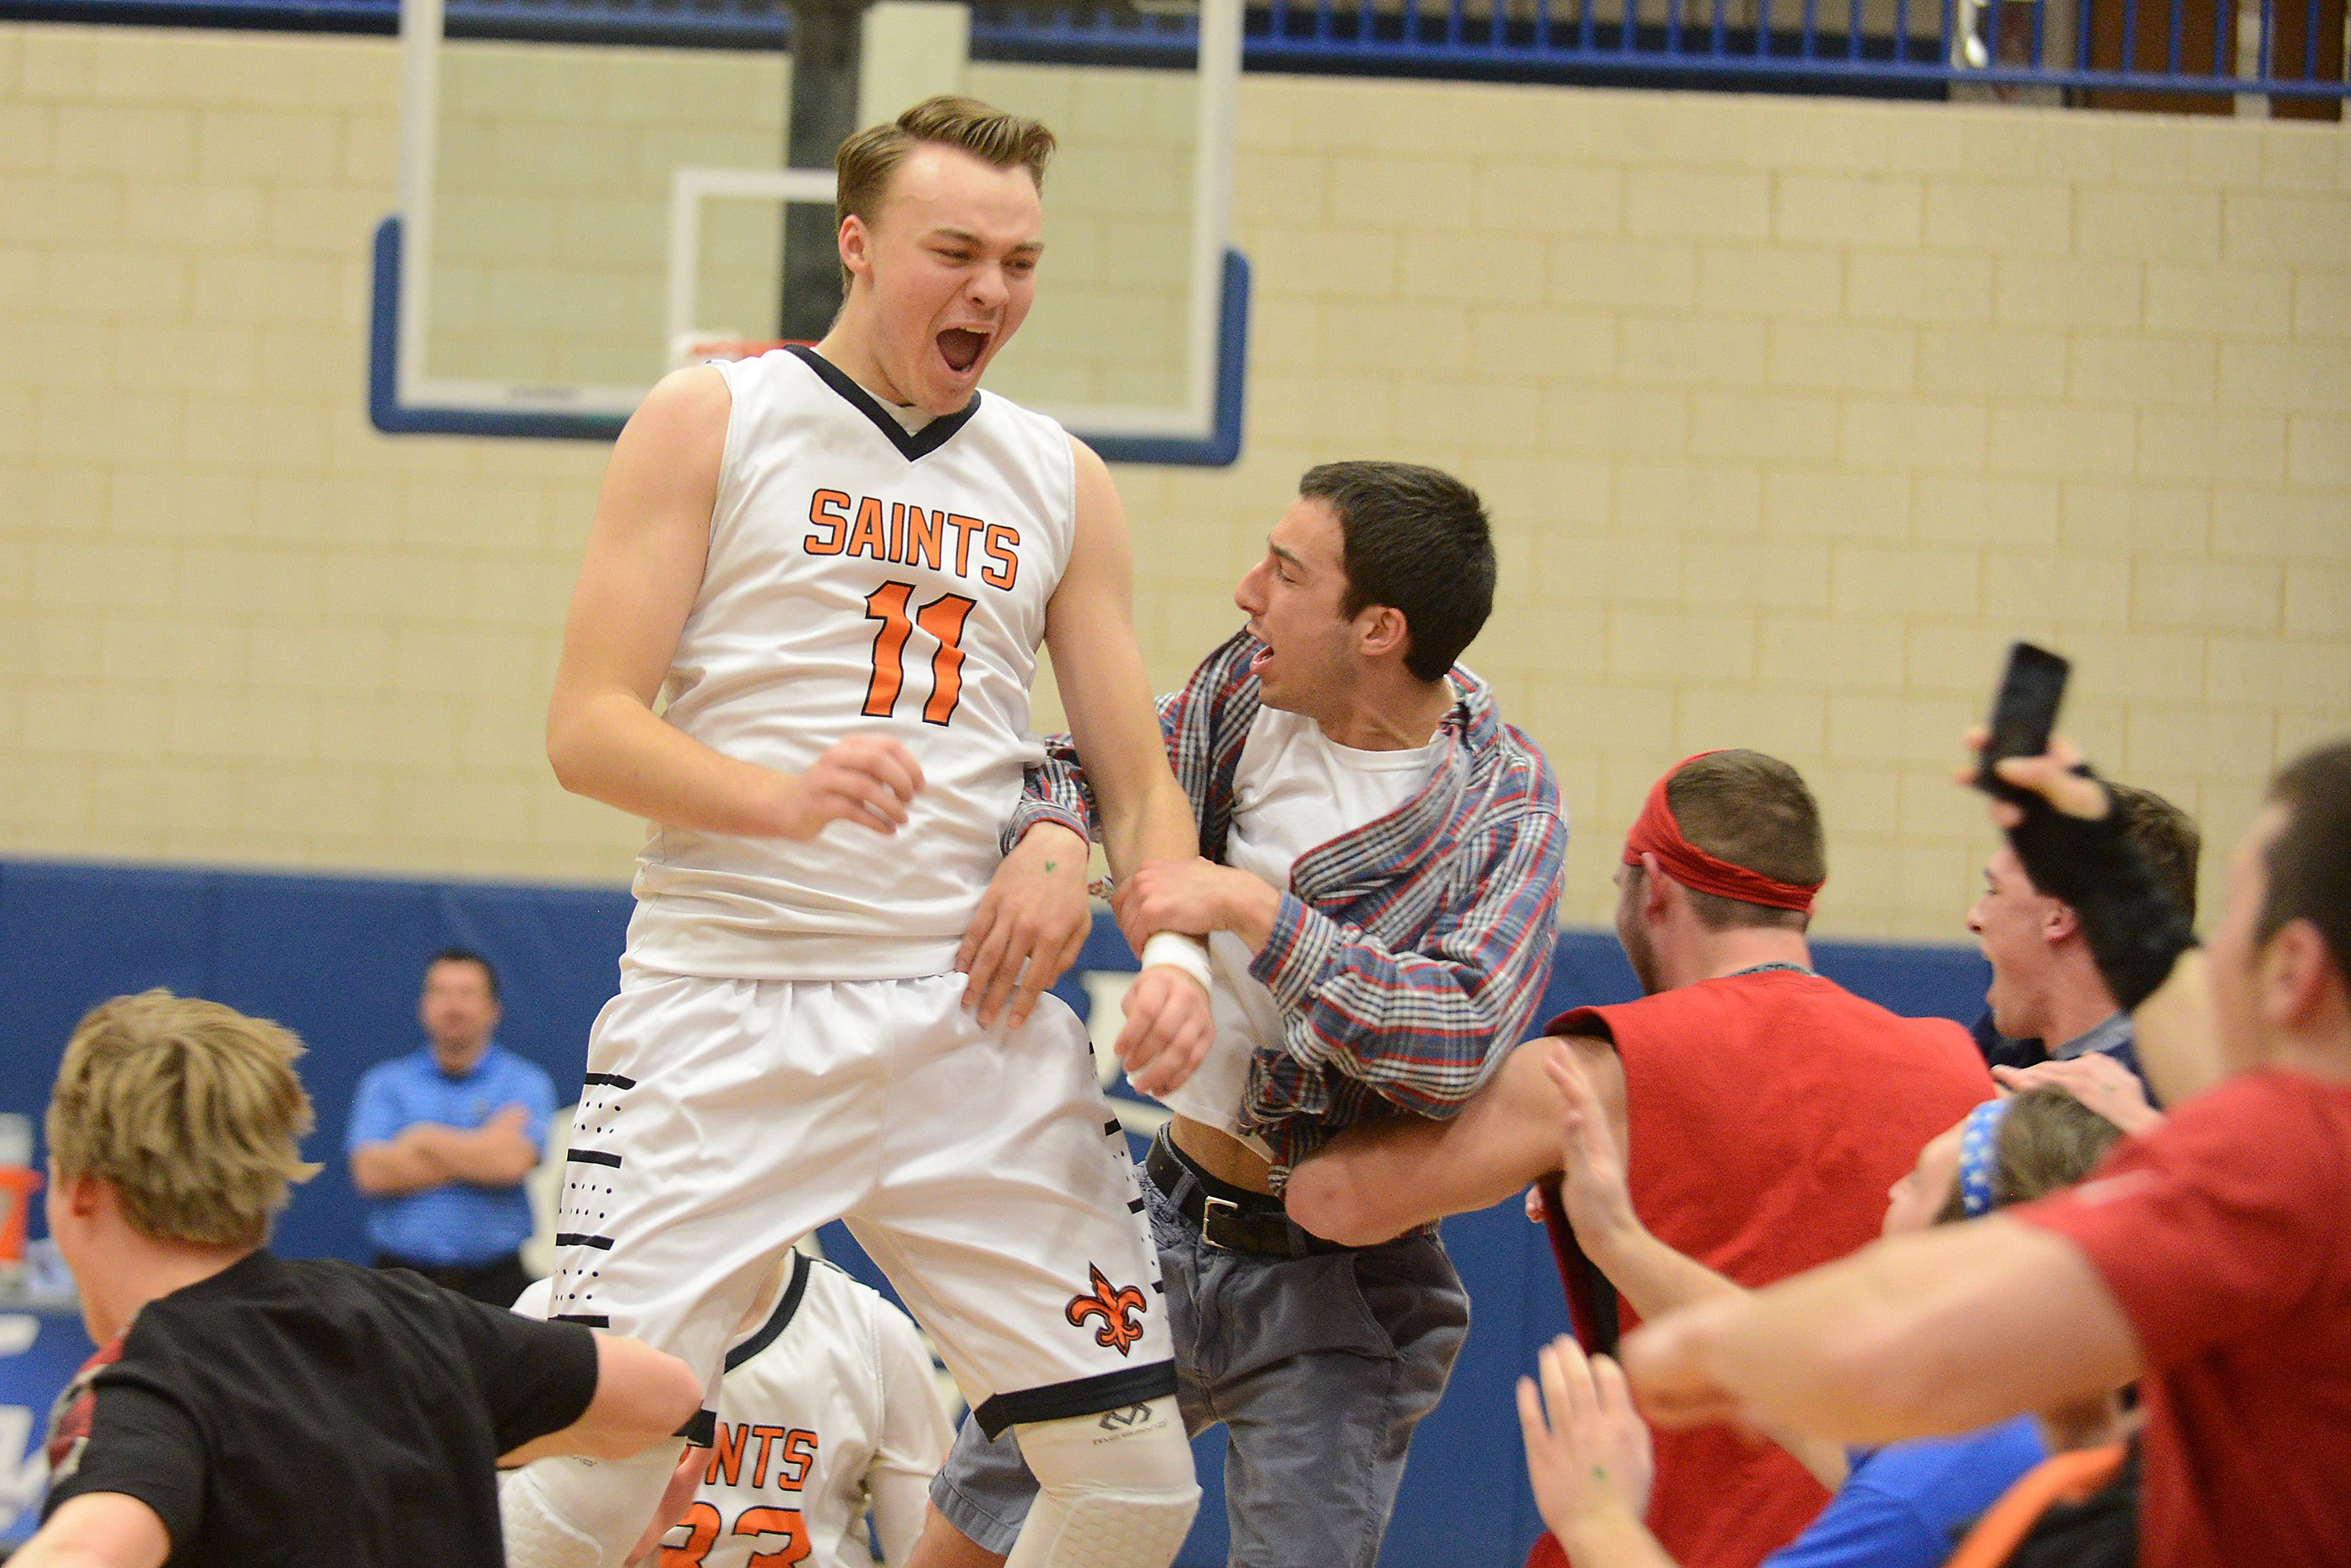 Images: St. Charles East vs. St. Charles North, boys basketball